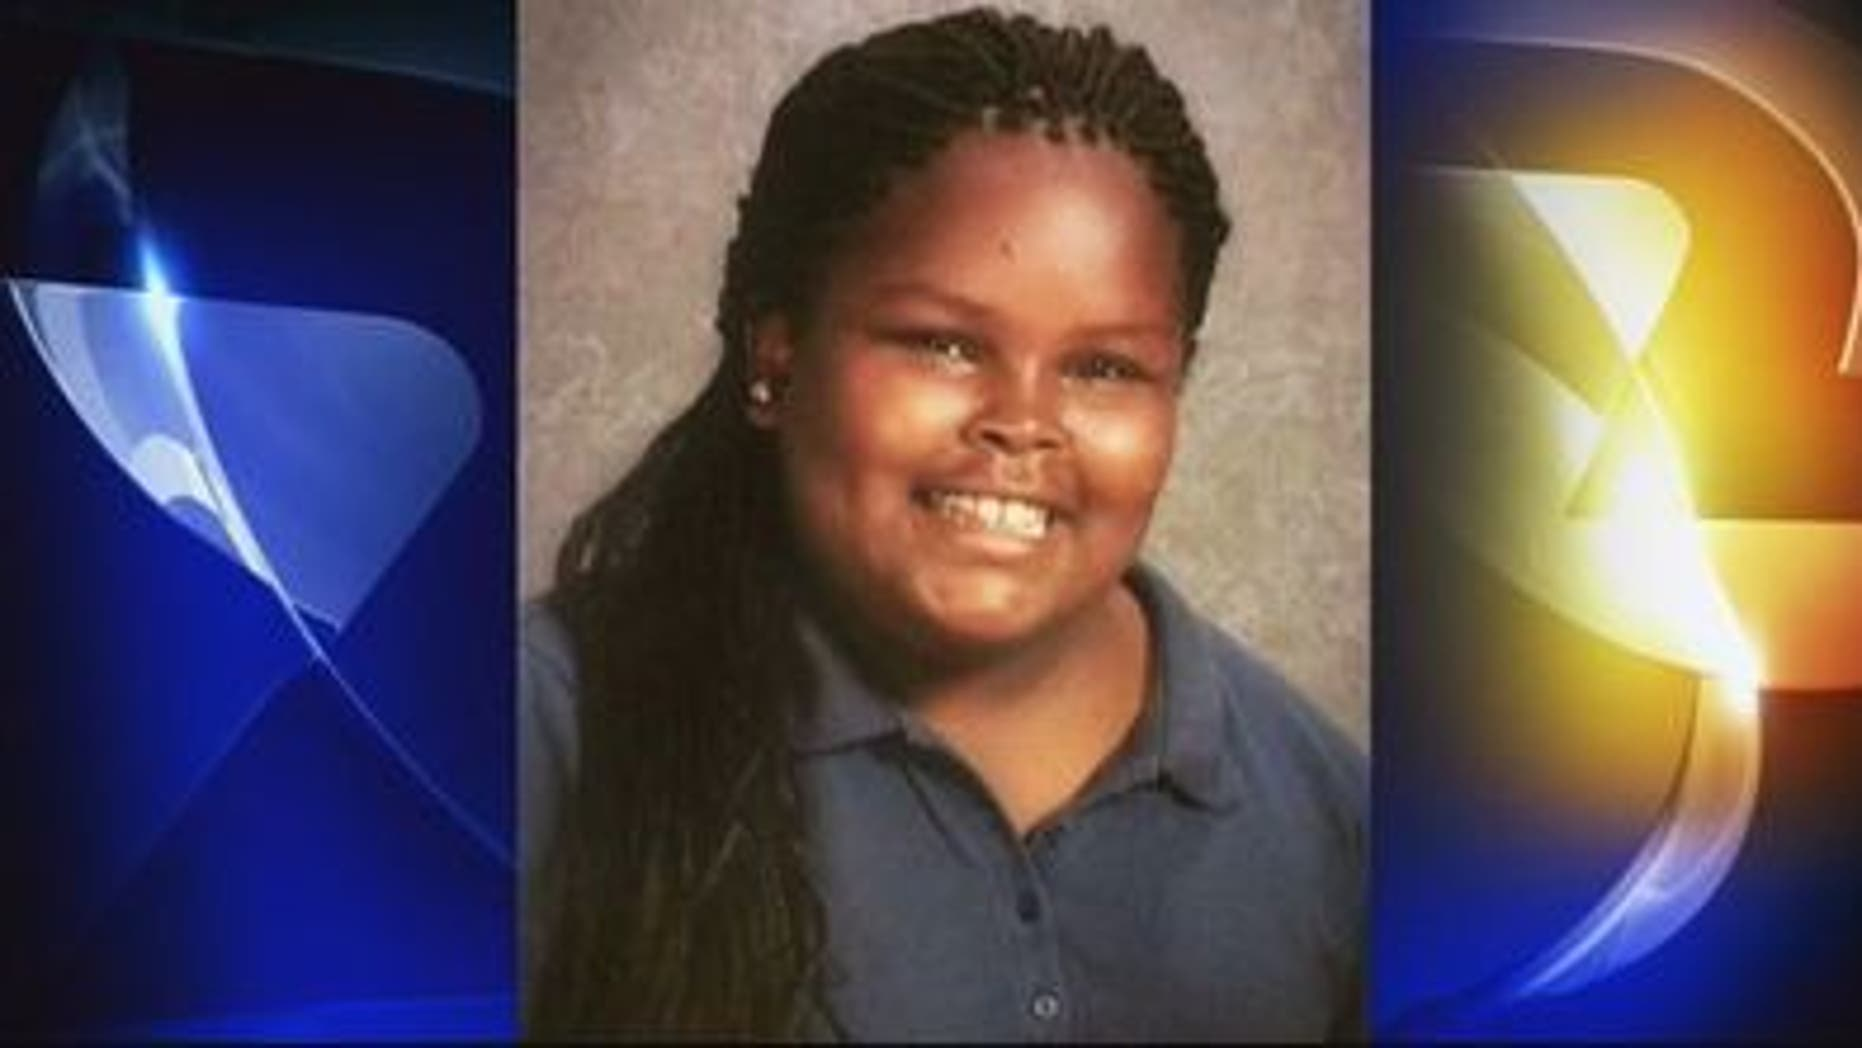 This photo shows 13-year-old Jahi McMath, who will be kept on life support indefinitely despite being declared legally brain dead by officials at a California hospital  (KTVU/E.C. Reems Academy of Technology and Arts)